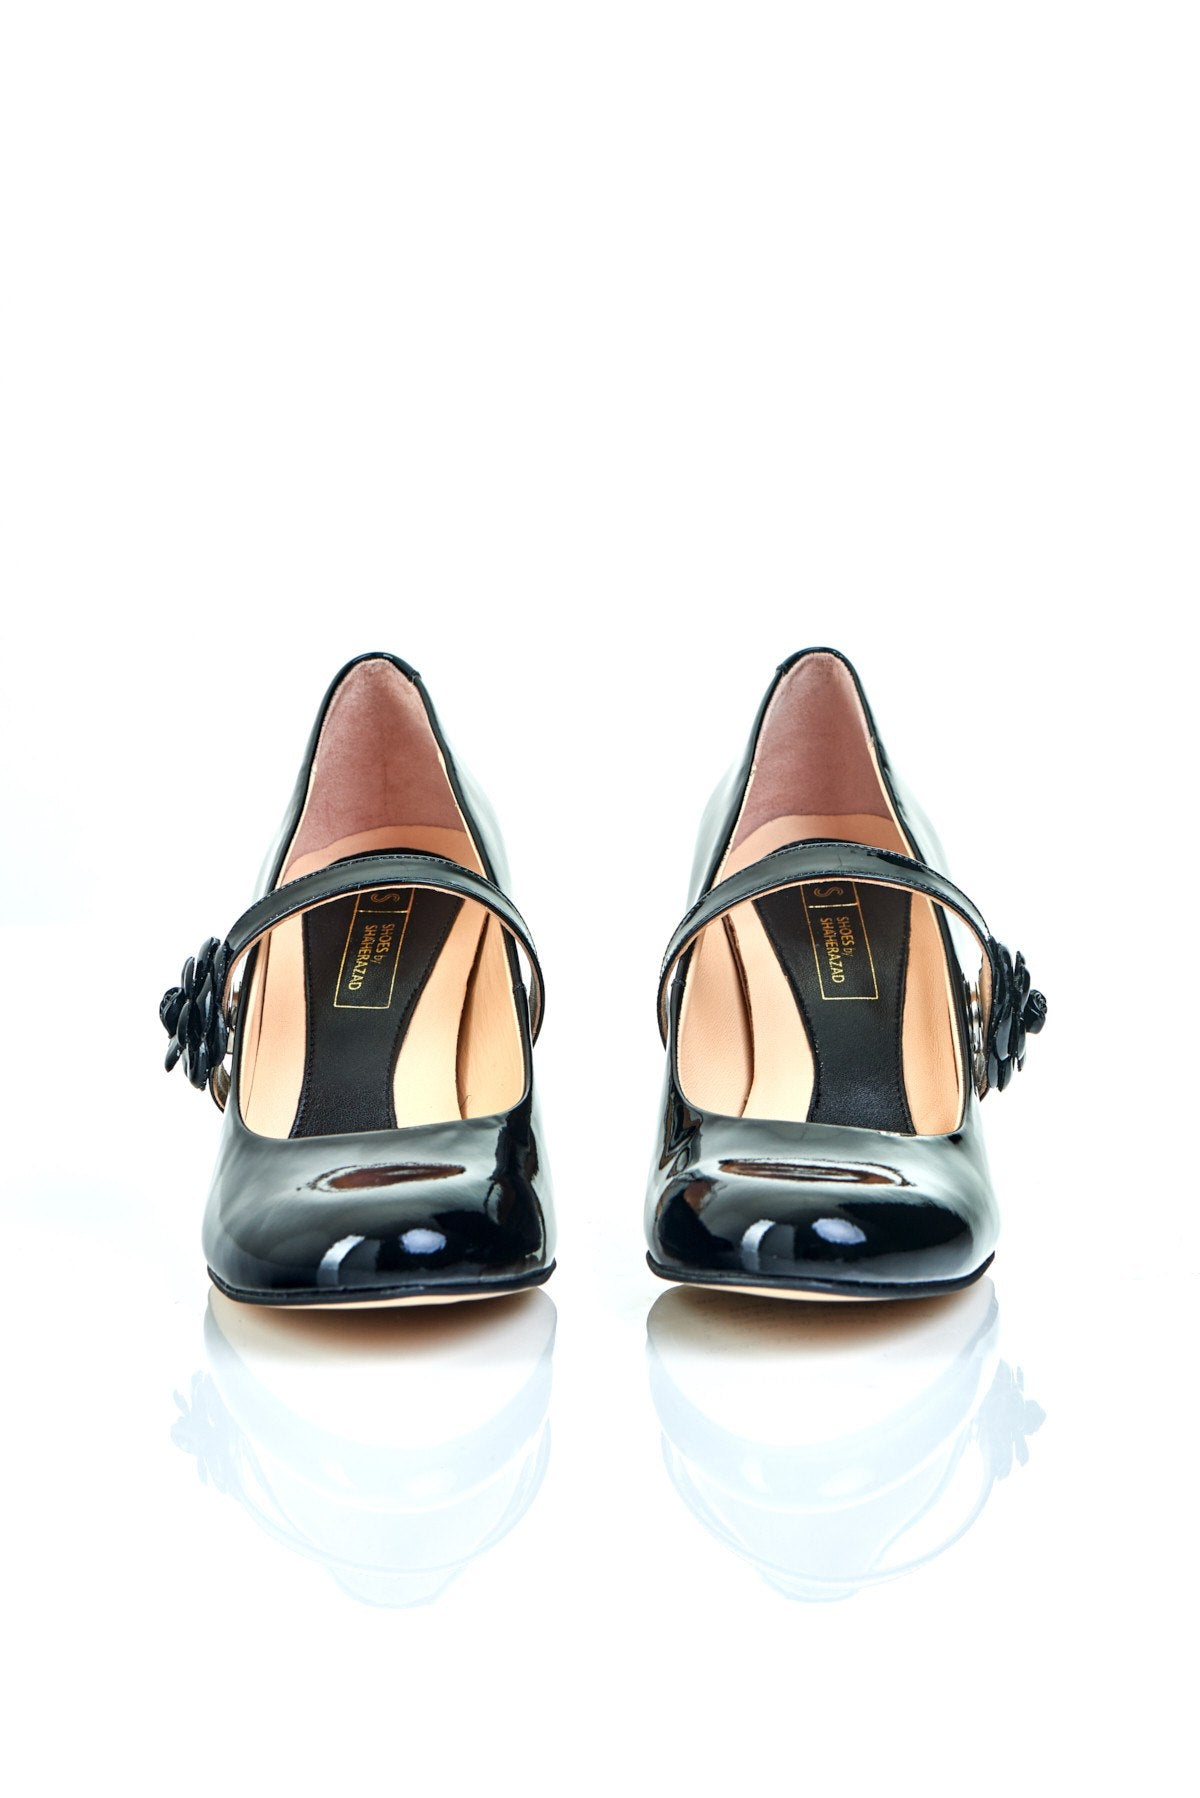 Don't Wait Up - 18 Hour Heels - Black Leather - Shoes by Shaherazad